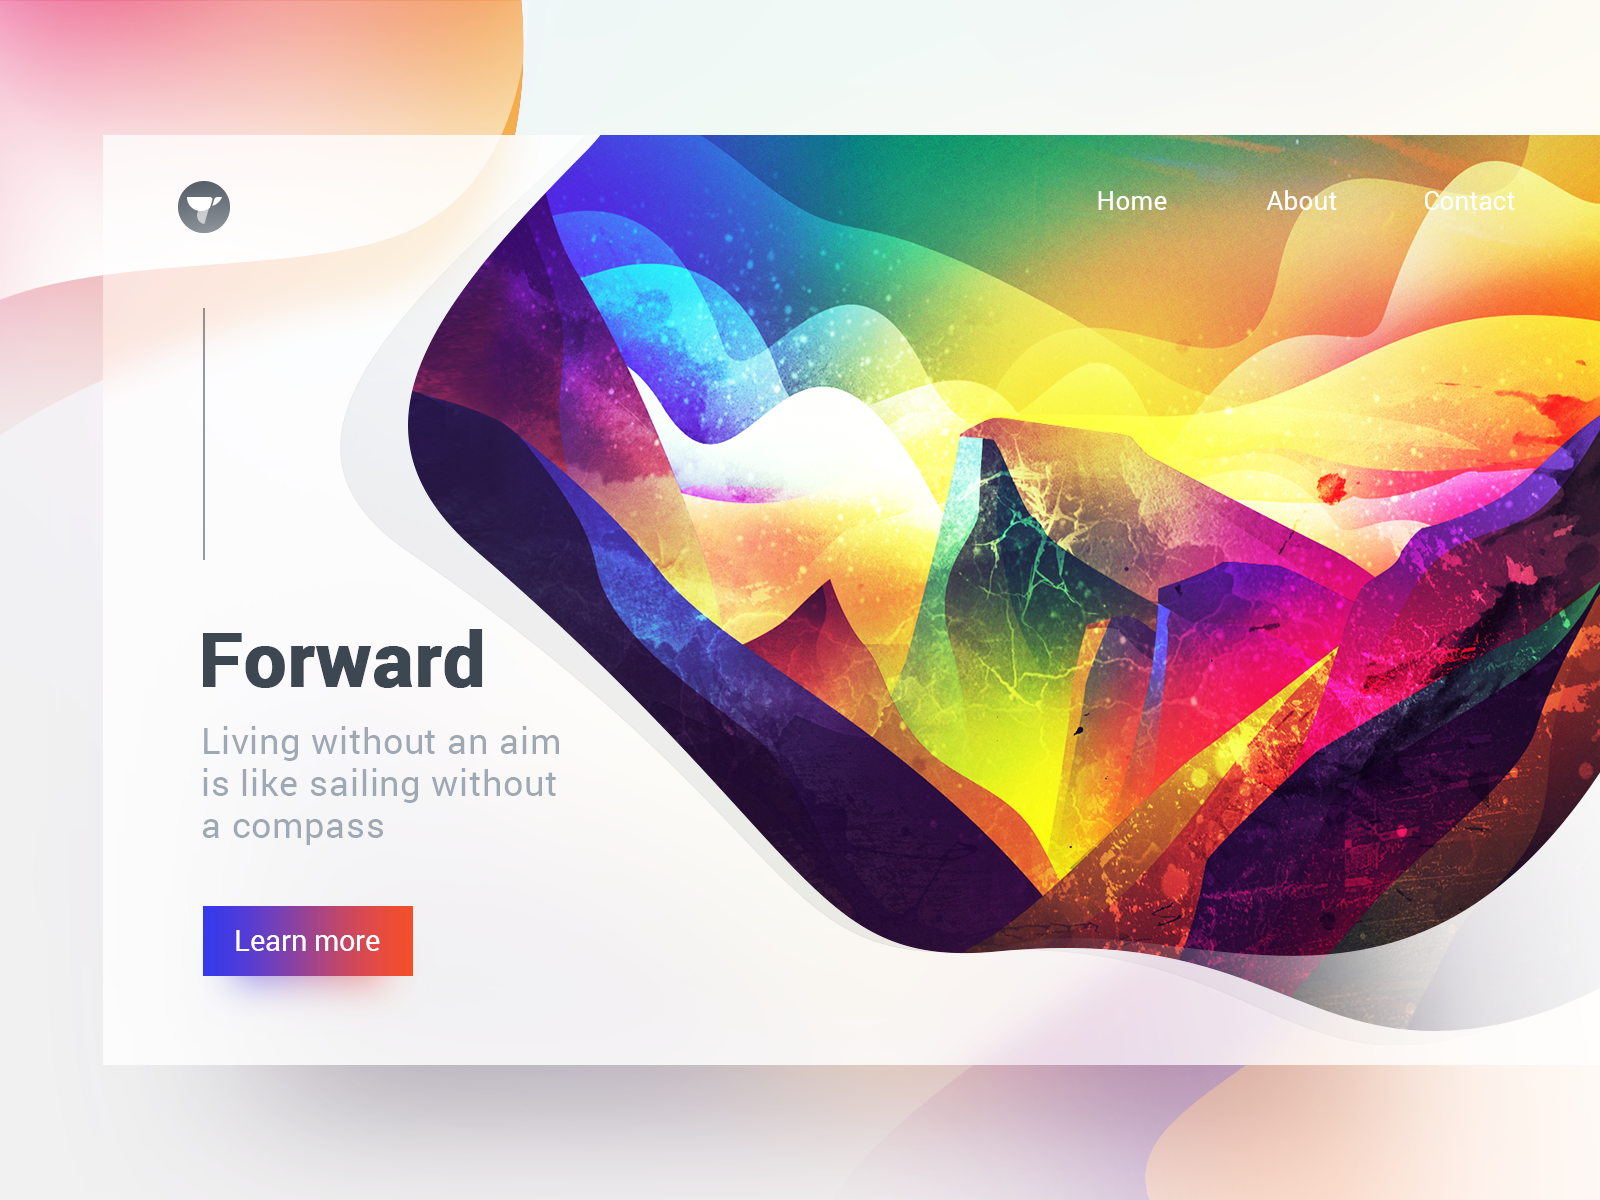 b0583bbc54 2019 UI and UX Design Trends – UX Planet